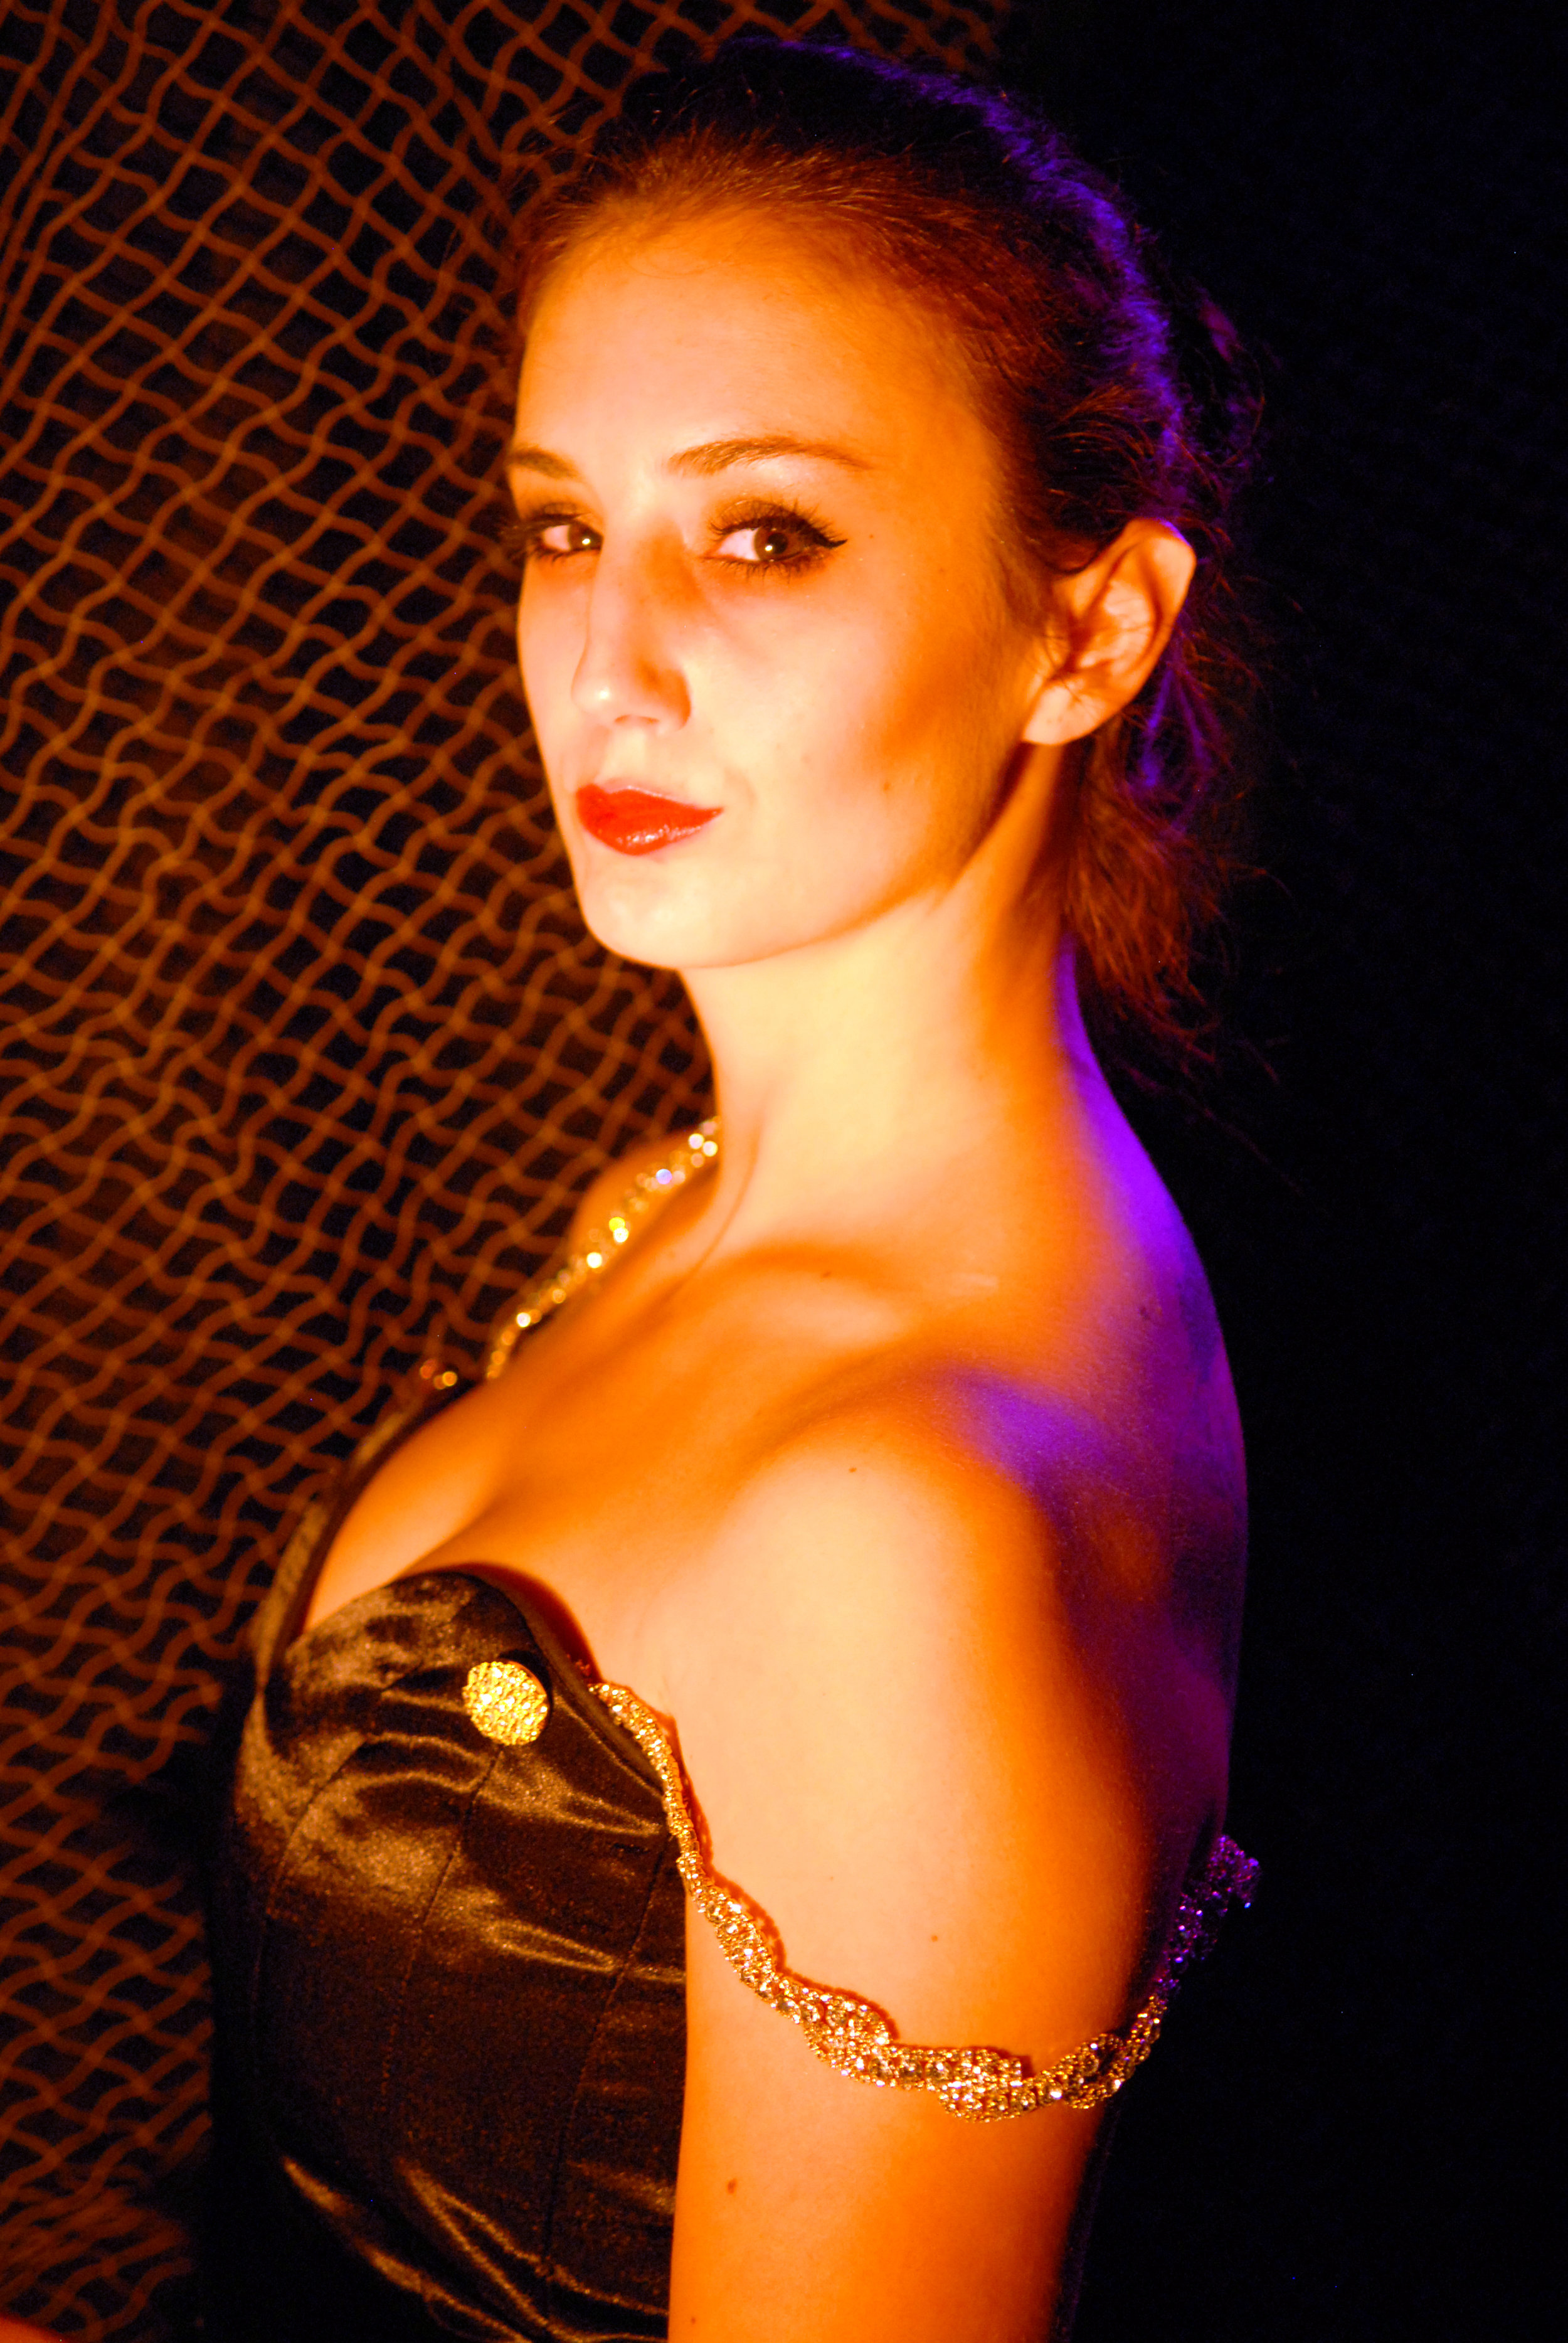 Samantha McMahon as Madame X